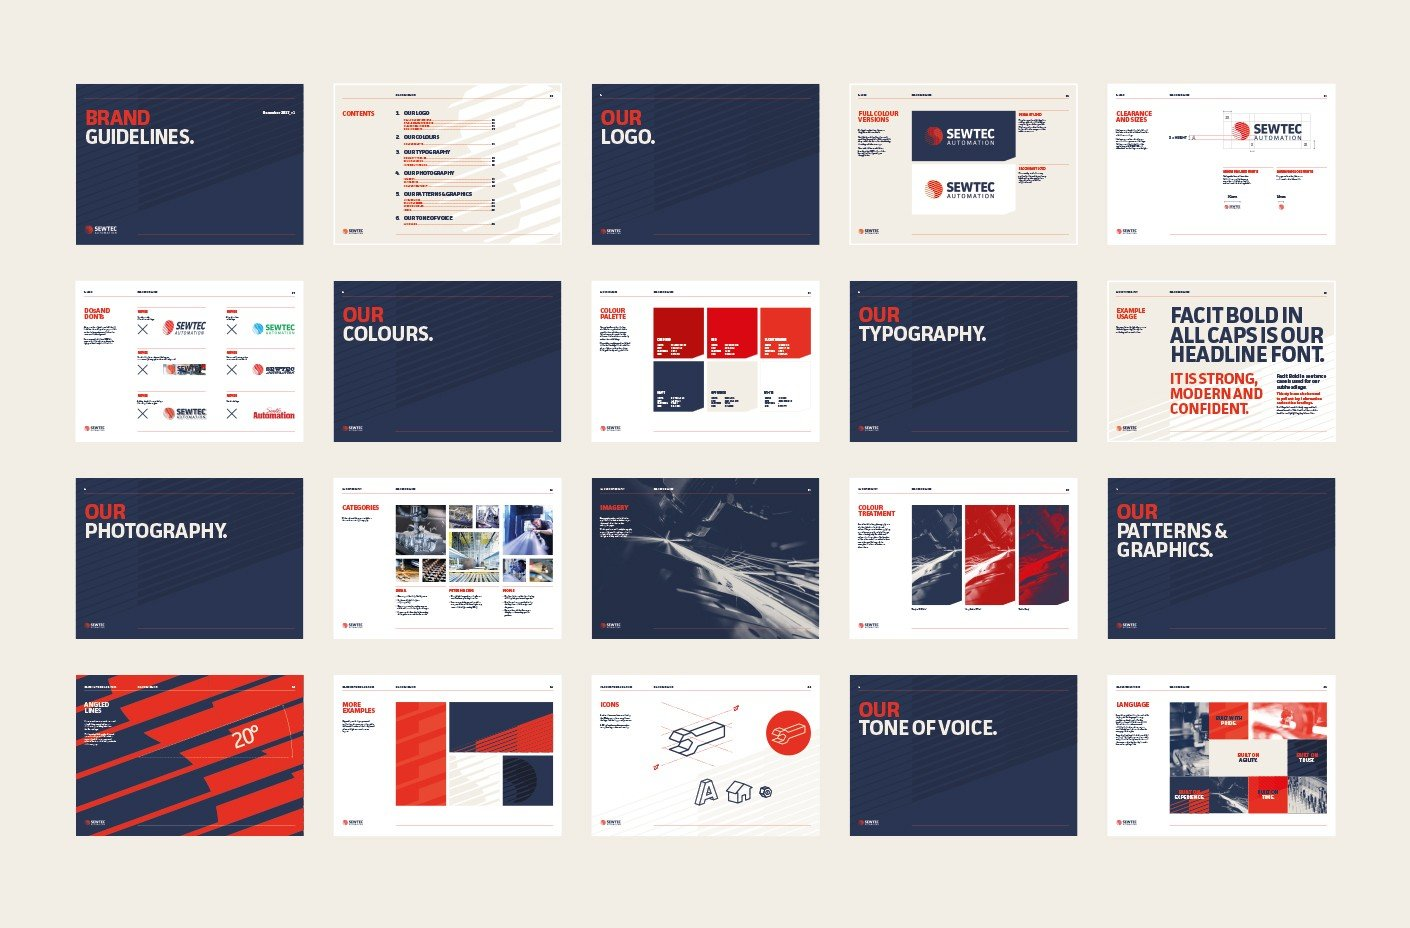 Sewtec brand guidelines